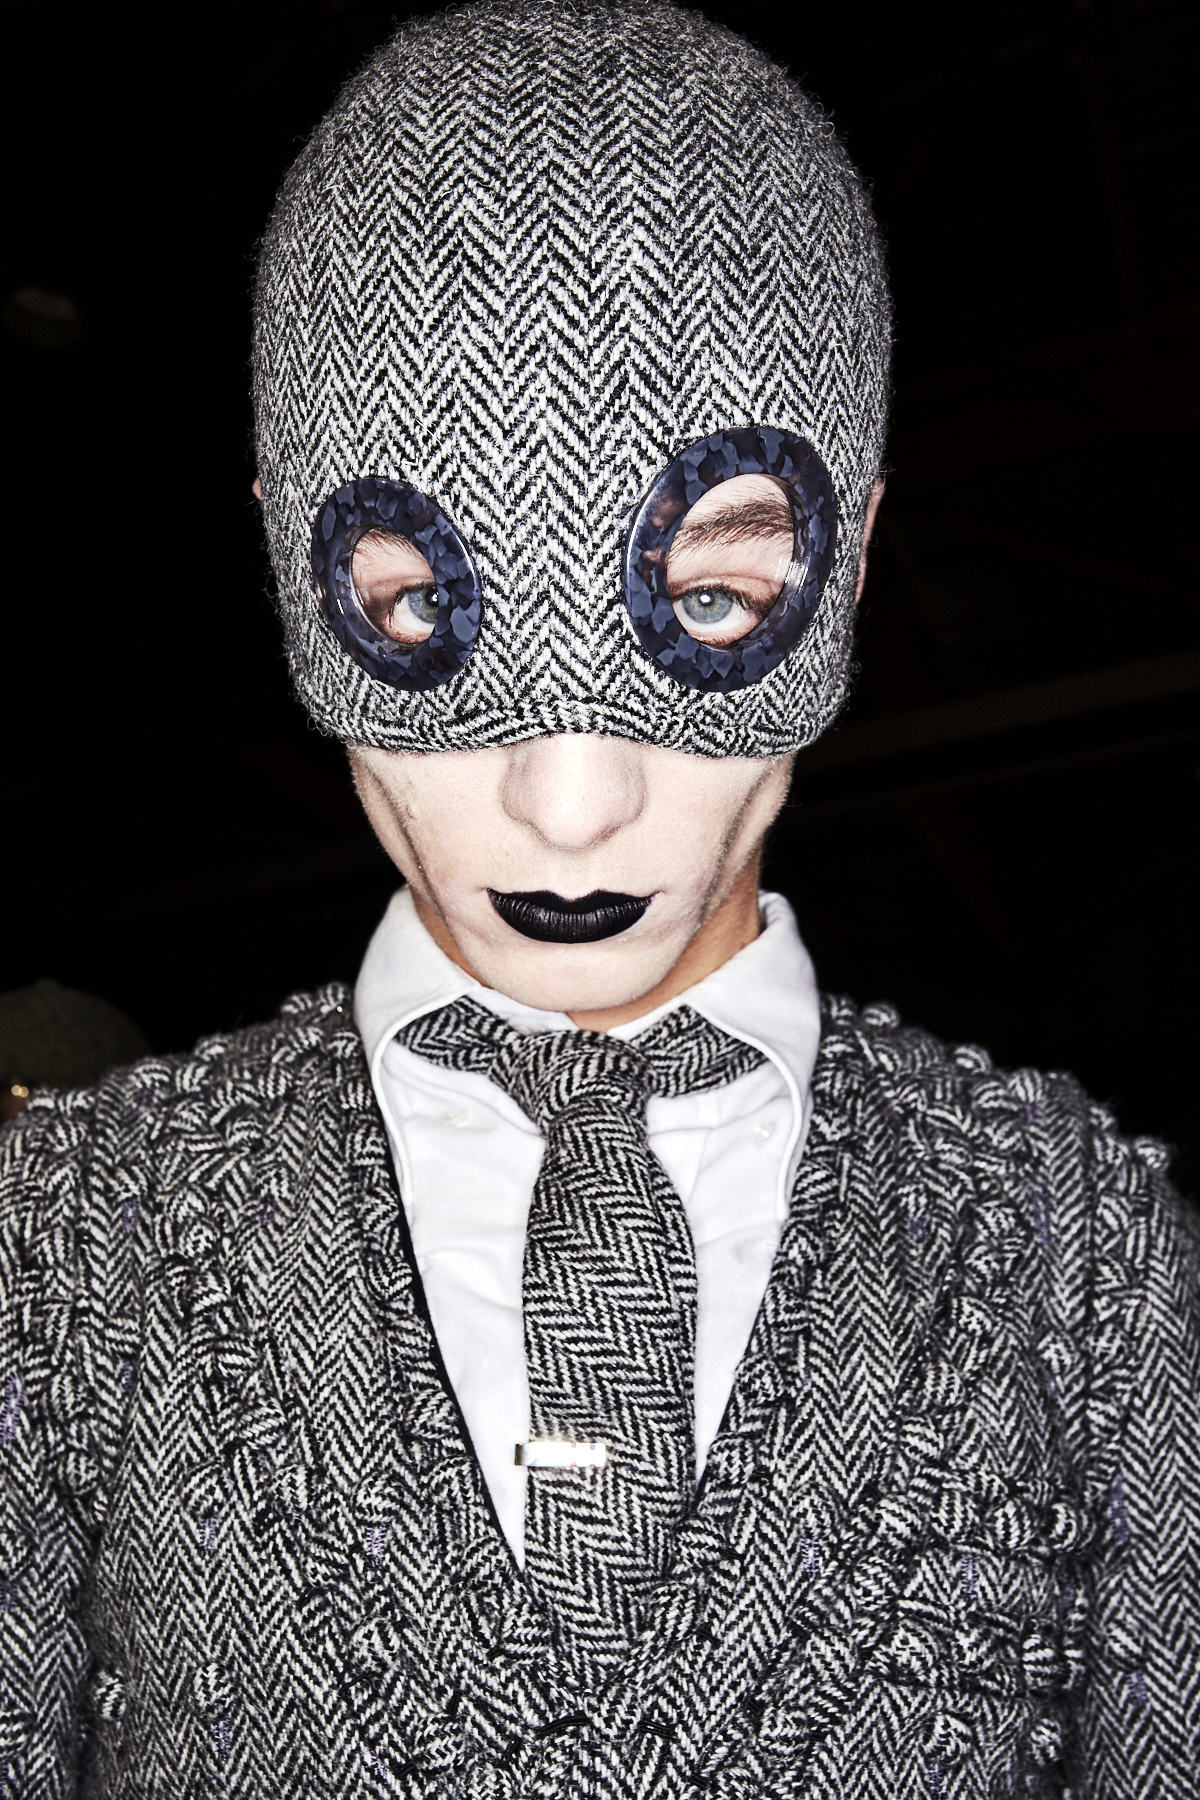 Thom Browne Fall 17 Men Fashion Show Paris Backstage